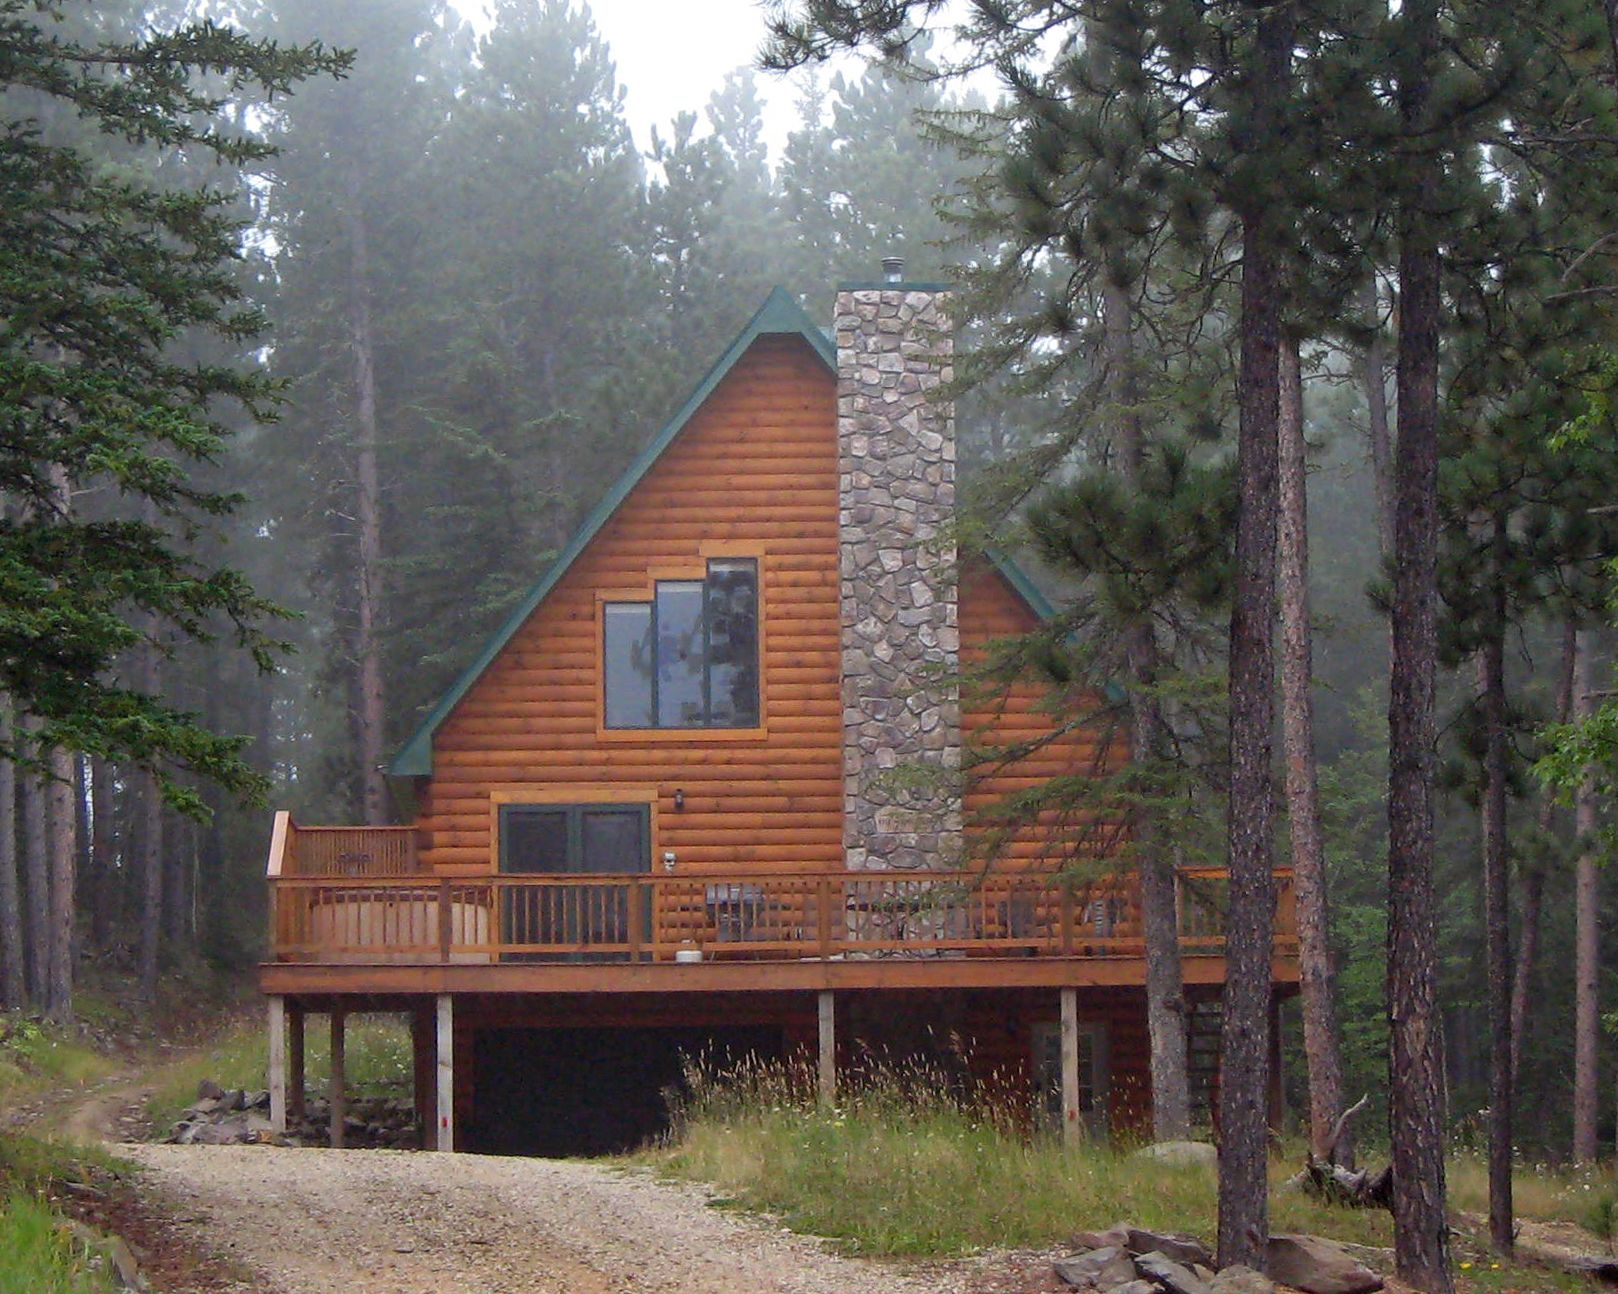 accommodations in log wyoming history houses landing cabins for cabinshouses rent that accommodation and s laramie